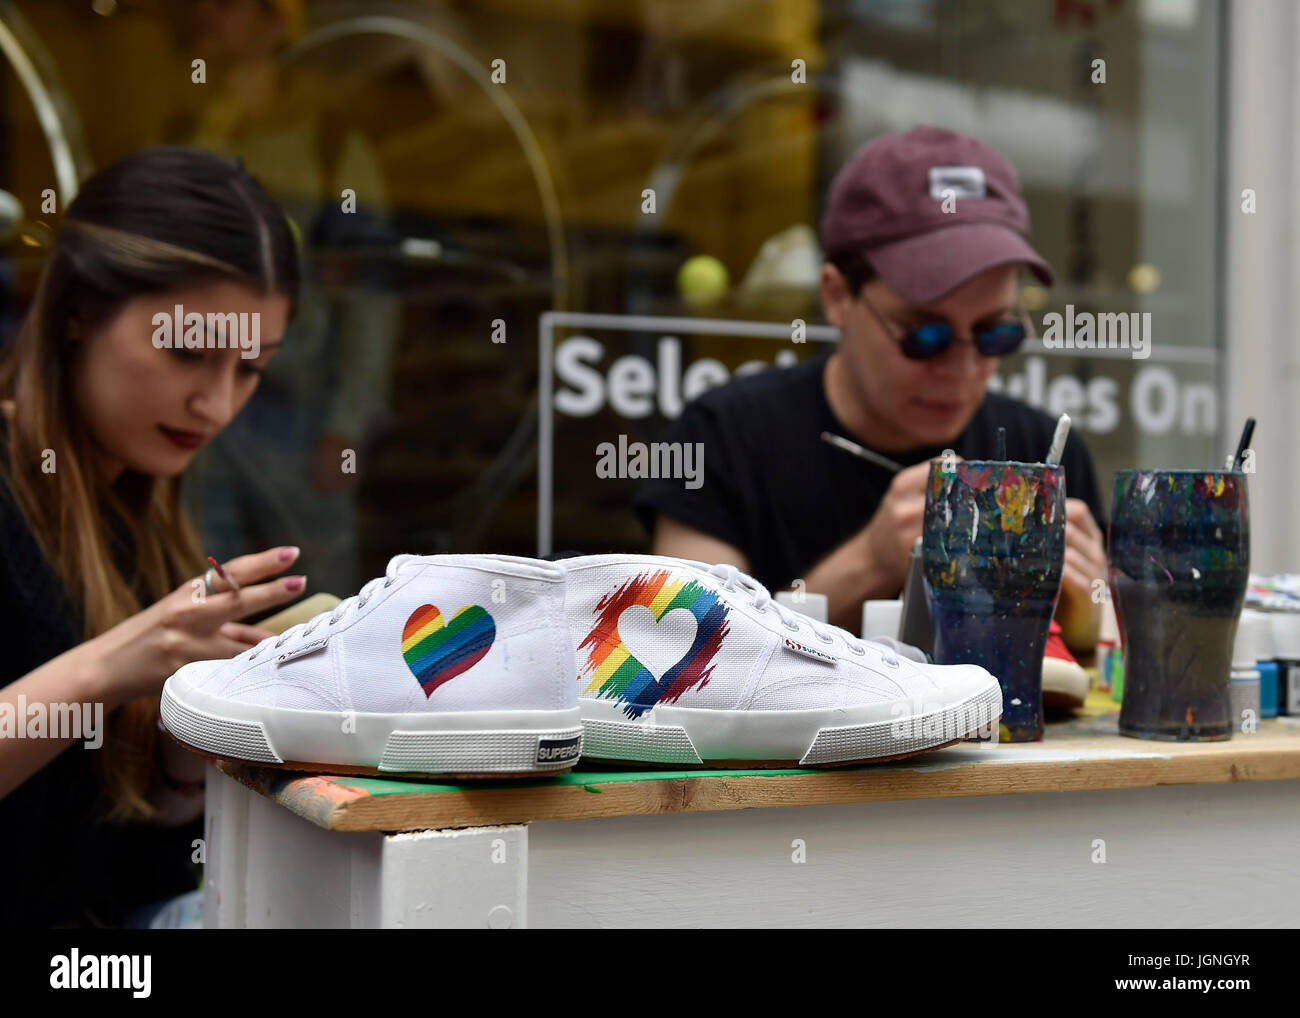 London, UK. 08th July, 2017. The artists draw the Rain Bow on the shoes during Pride In London on Saturday. Photo - Stock Image